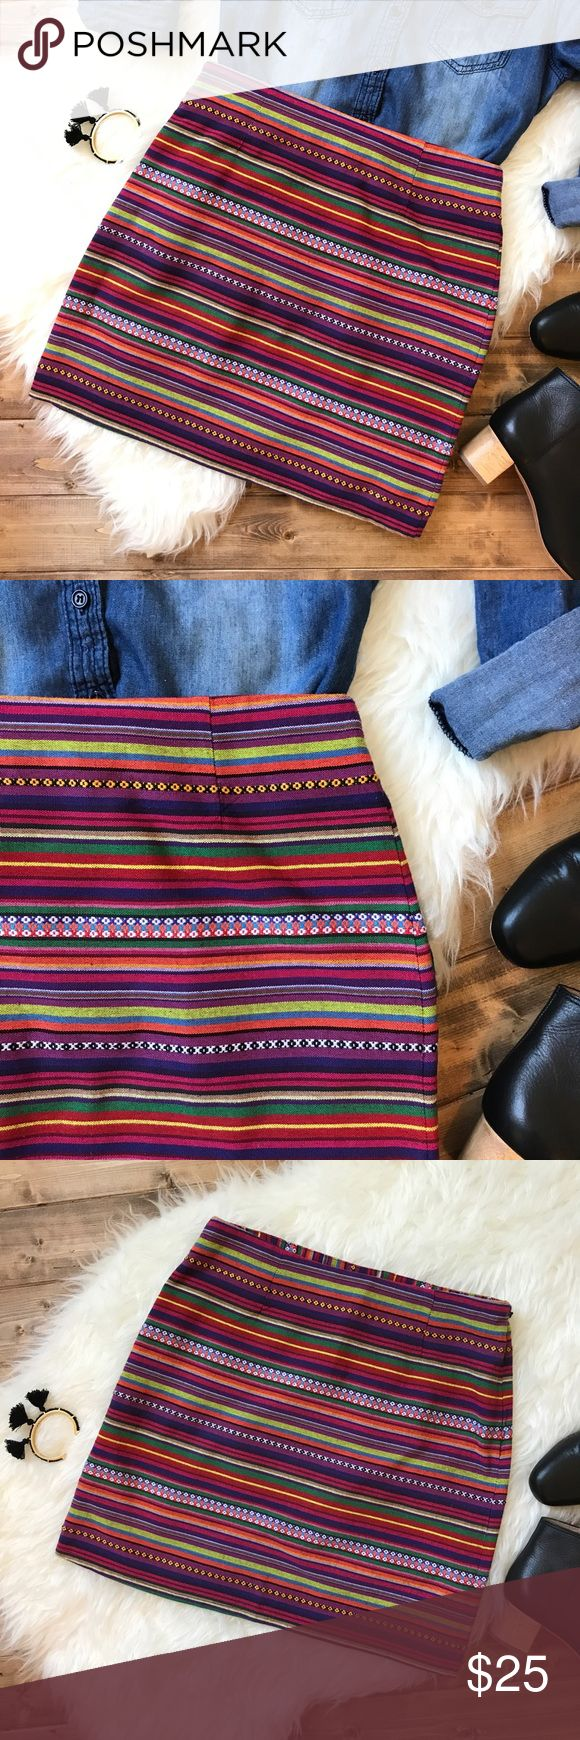 """• SHRINKING VIOLET Mexican print mini skirt • Mexican and Aztec print inspired mini skirt with bright colorful stripes! So fun and gorgeous! Pair with a chambray or a sweater with boots in the fall! One statement piece that finishes an outfit perfectly! Waist: 14"""" Length: 16"""" ❤️ the chambray shown in the pictures is also listed for sale in my closet!  shrinking violet Skirts Mini"""